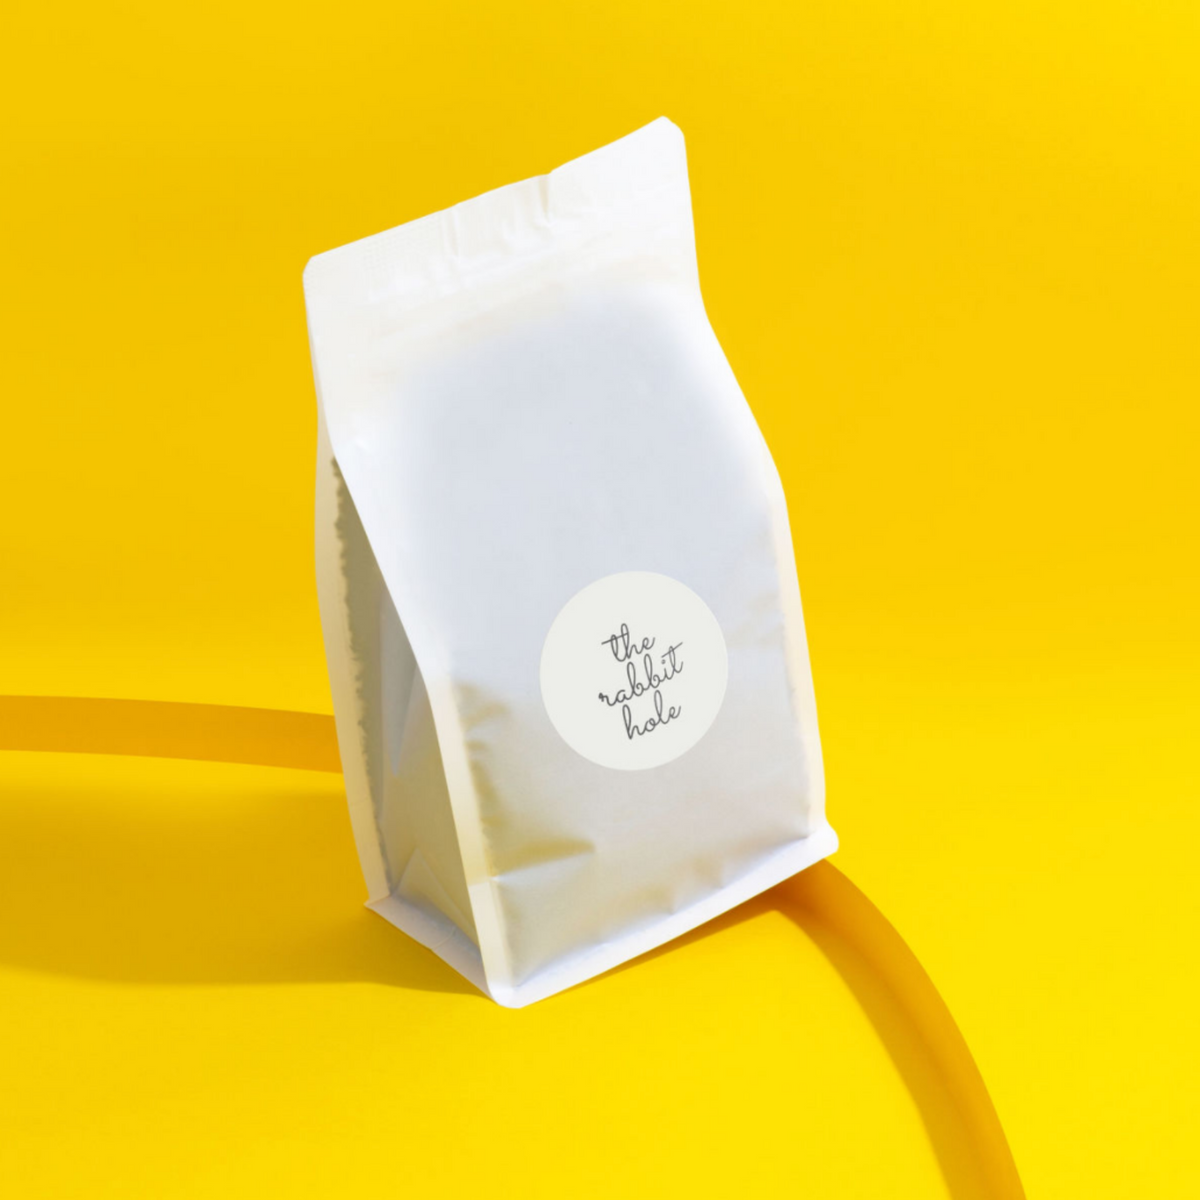 Bulk bag of loose leaf tea by The Rabbit Hole - Australian Made Tea on colourful yellow background.